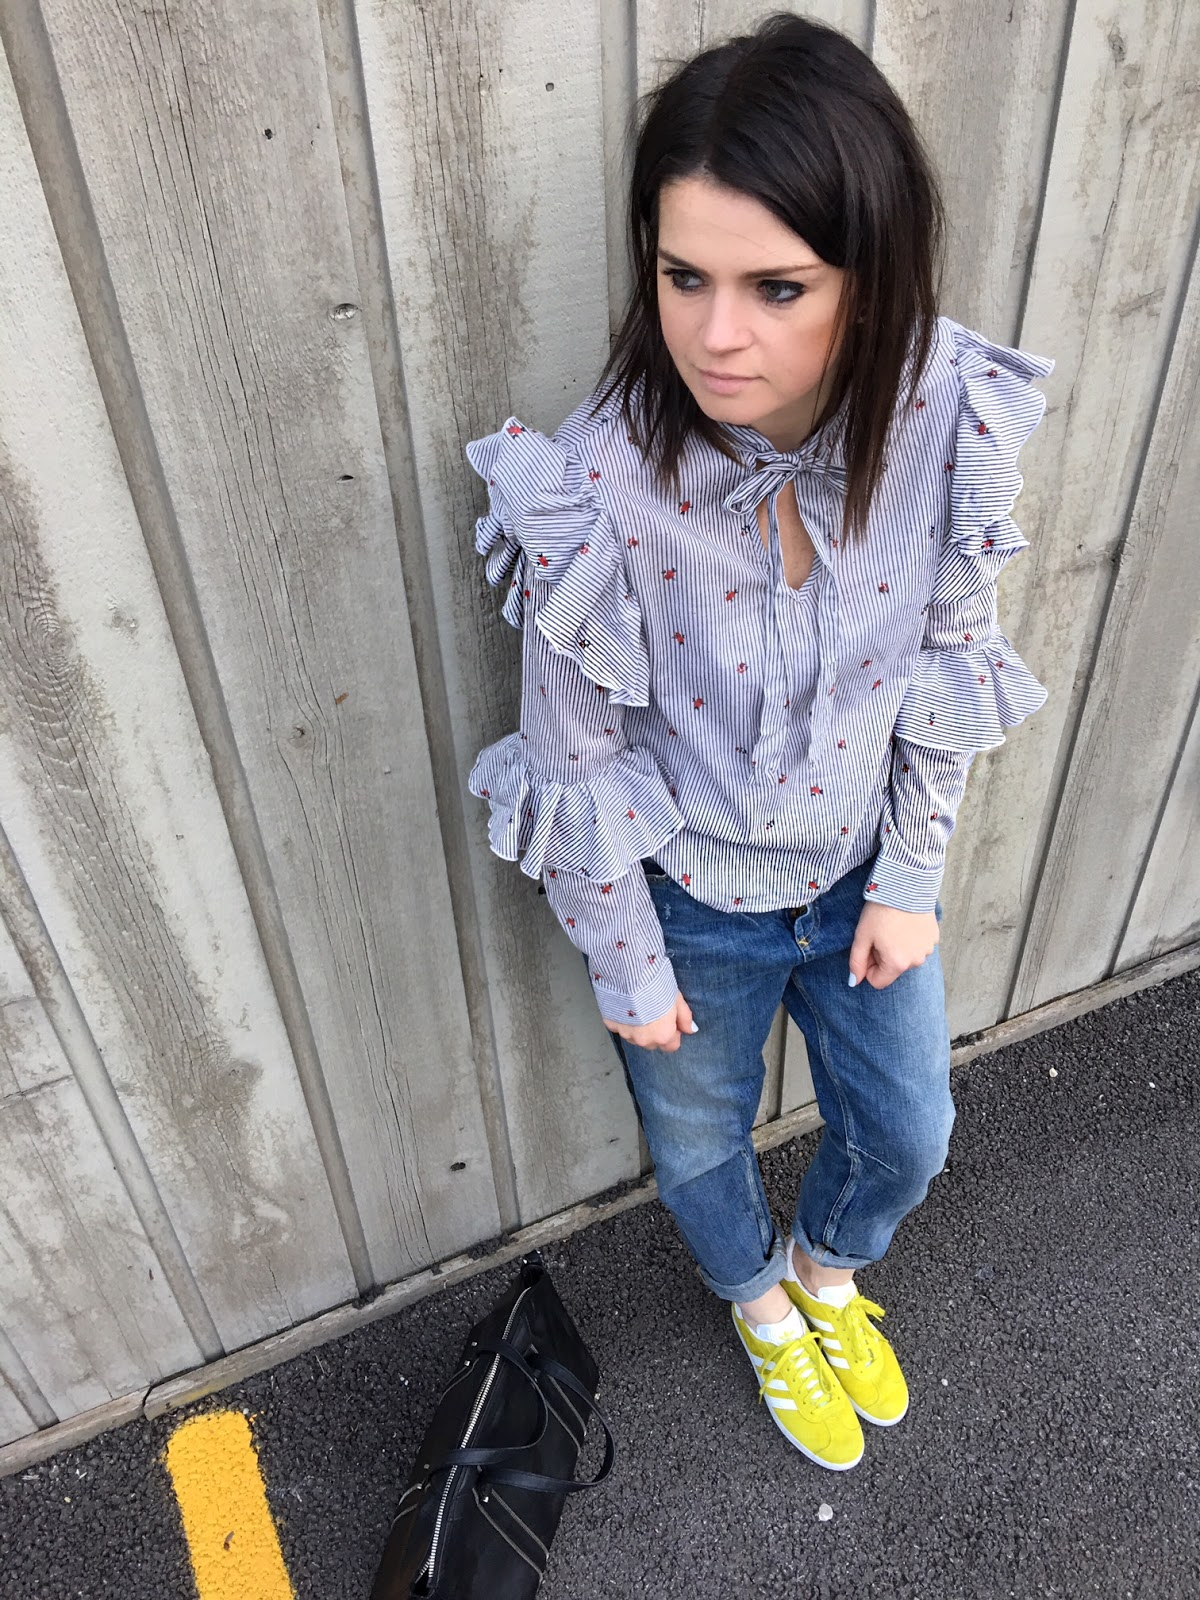 Double ruffle sleeve & lime green sneakers